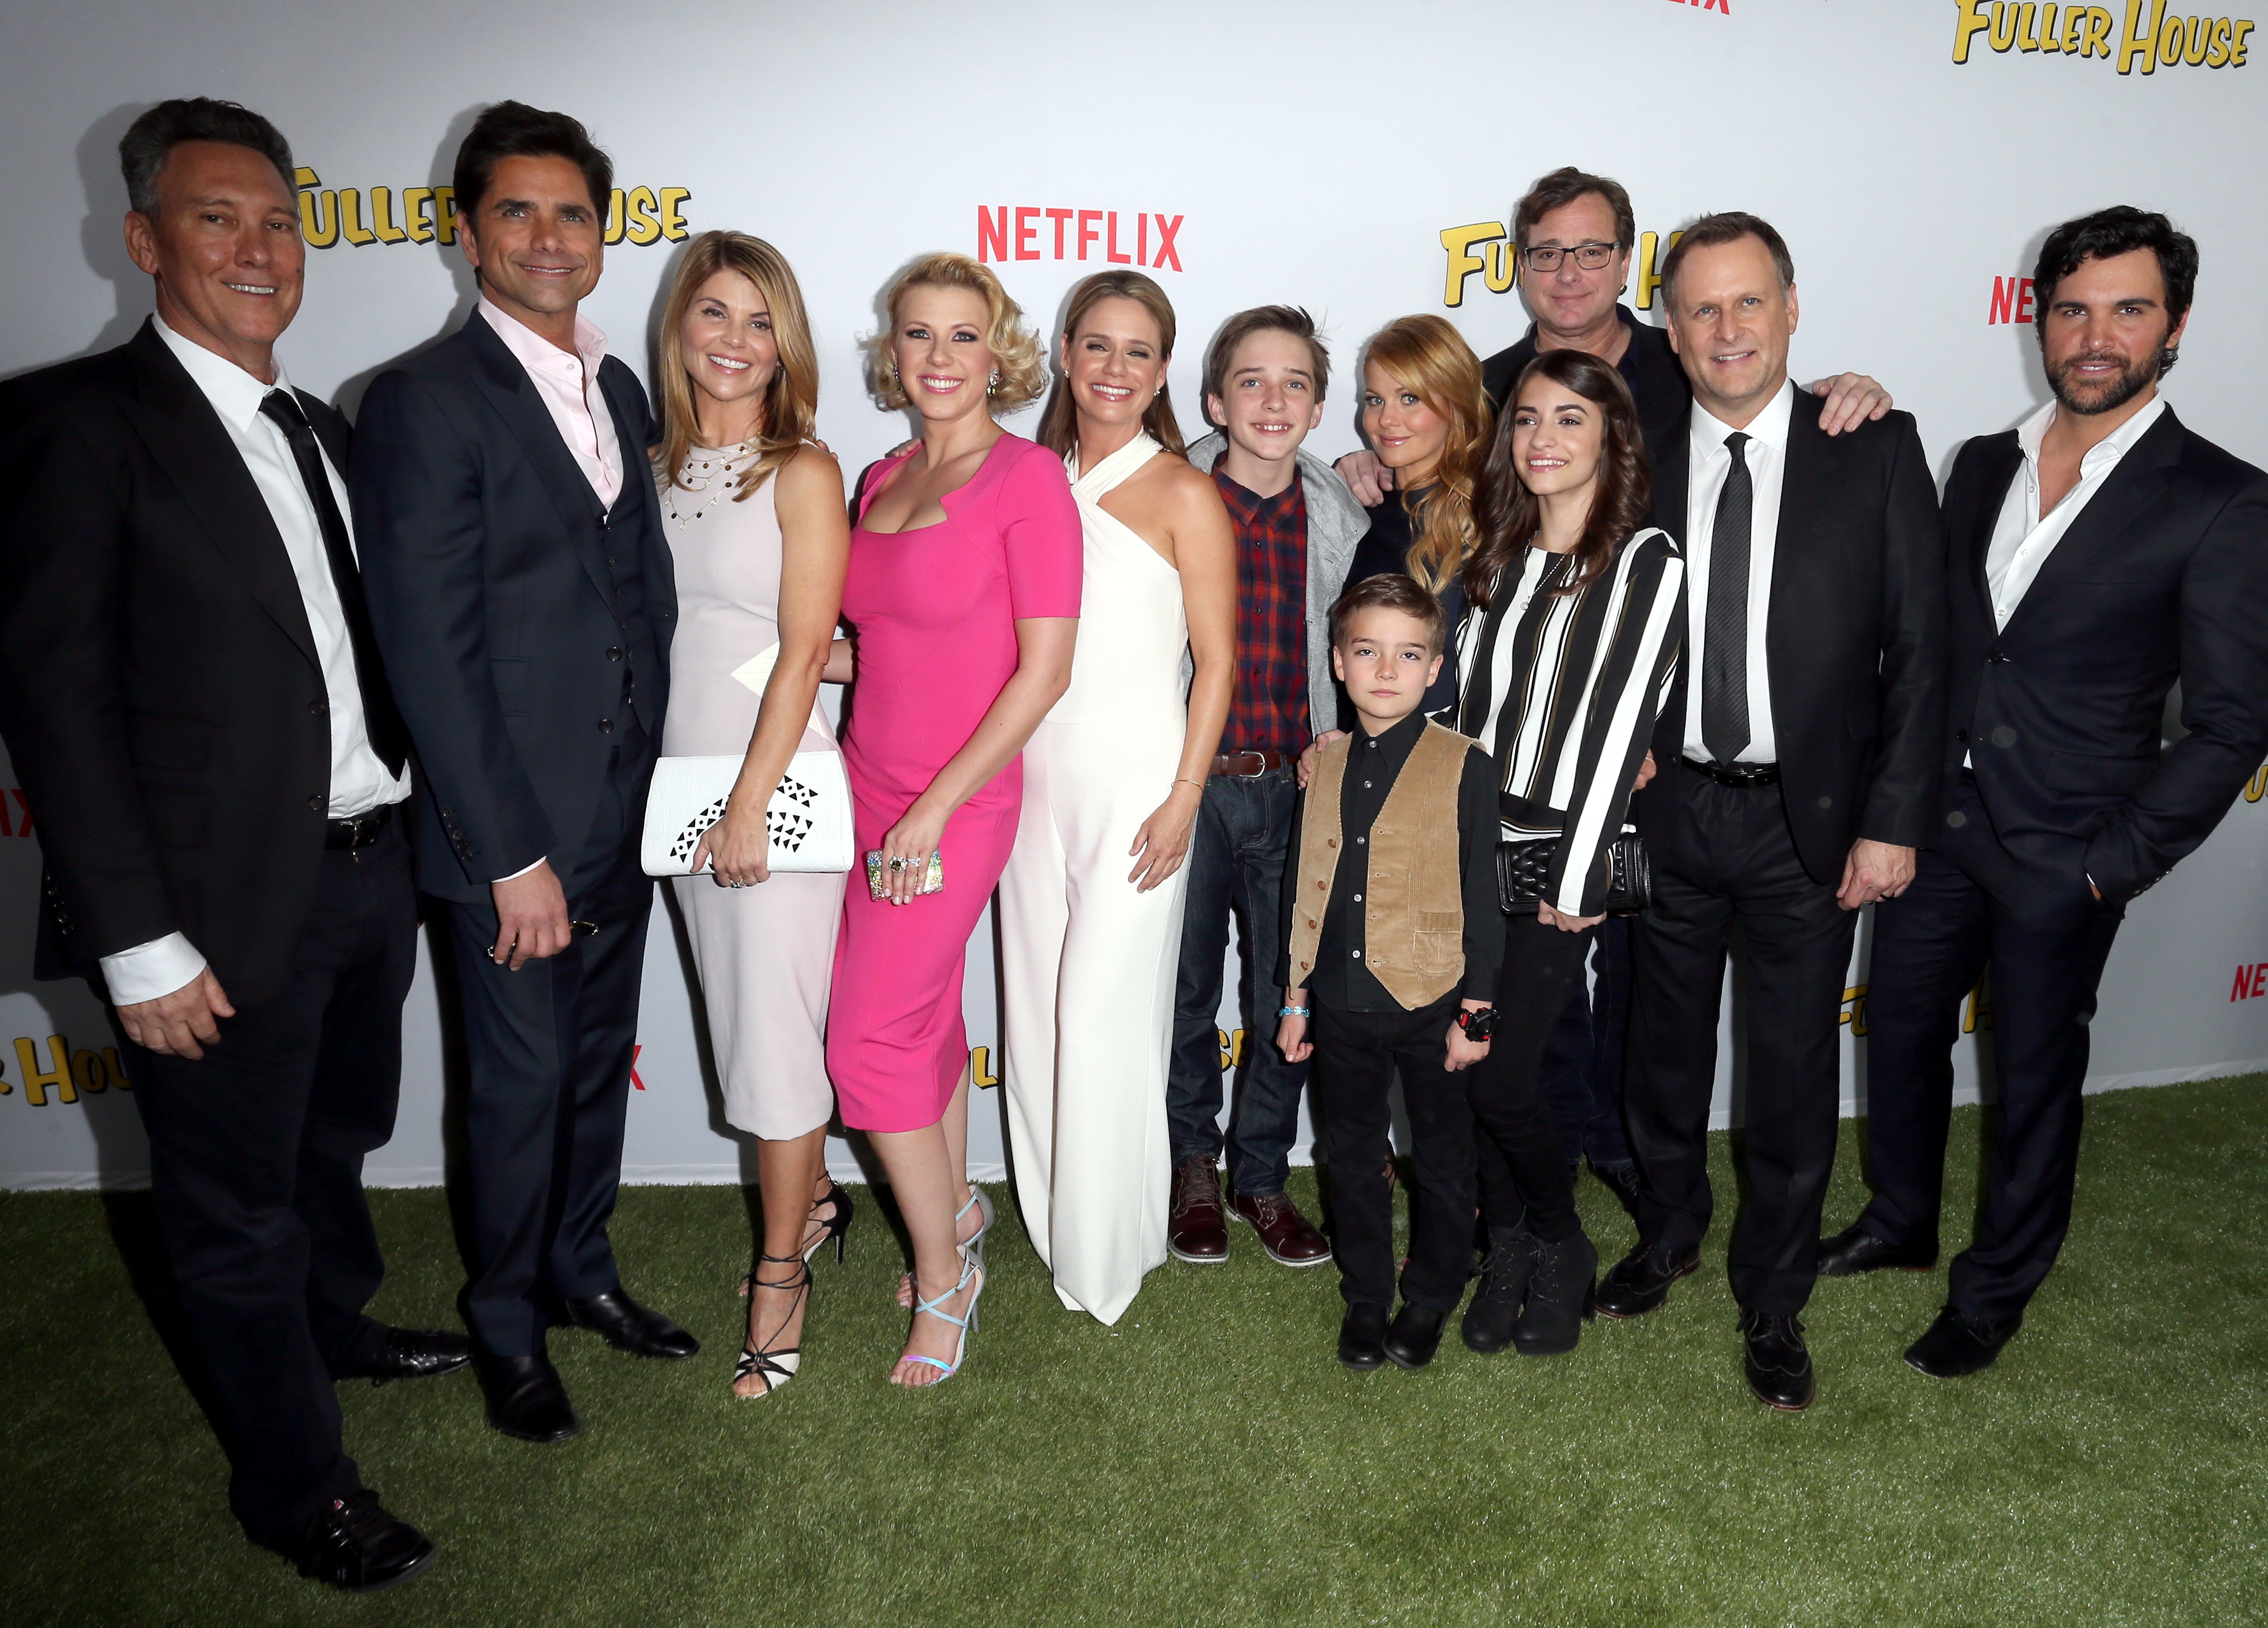 How Old Is The Fuller House Cast The Full House Actors